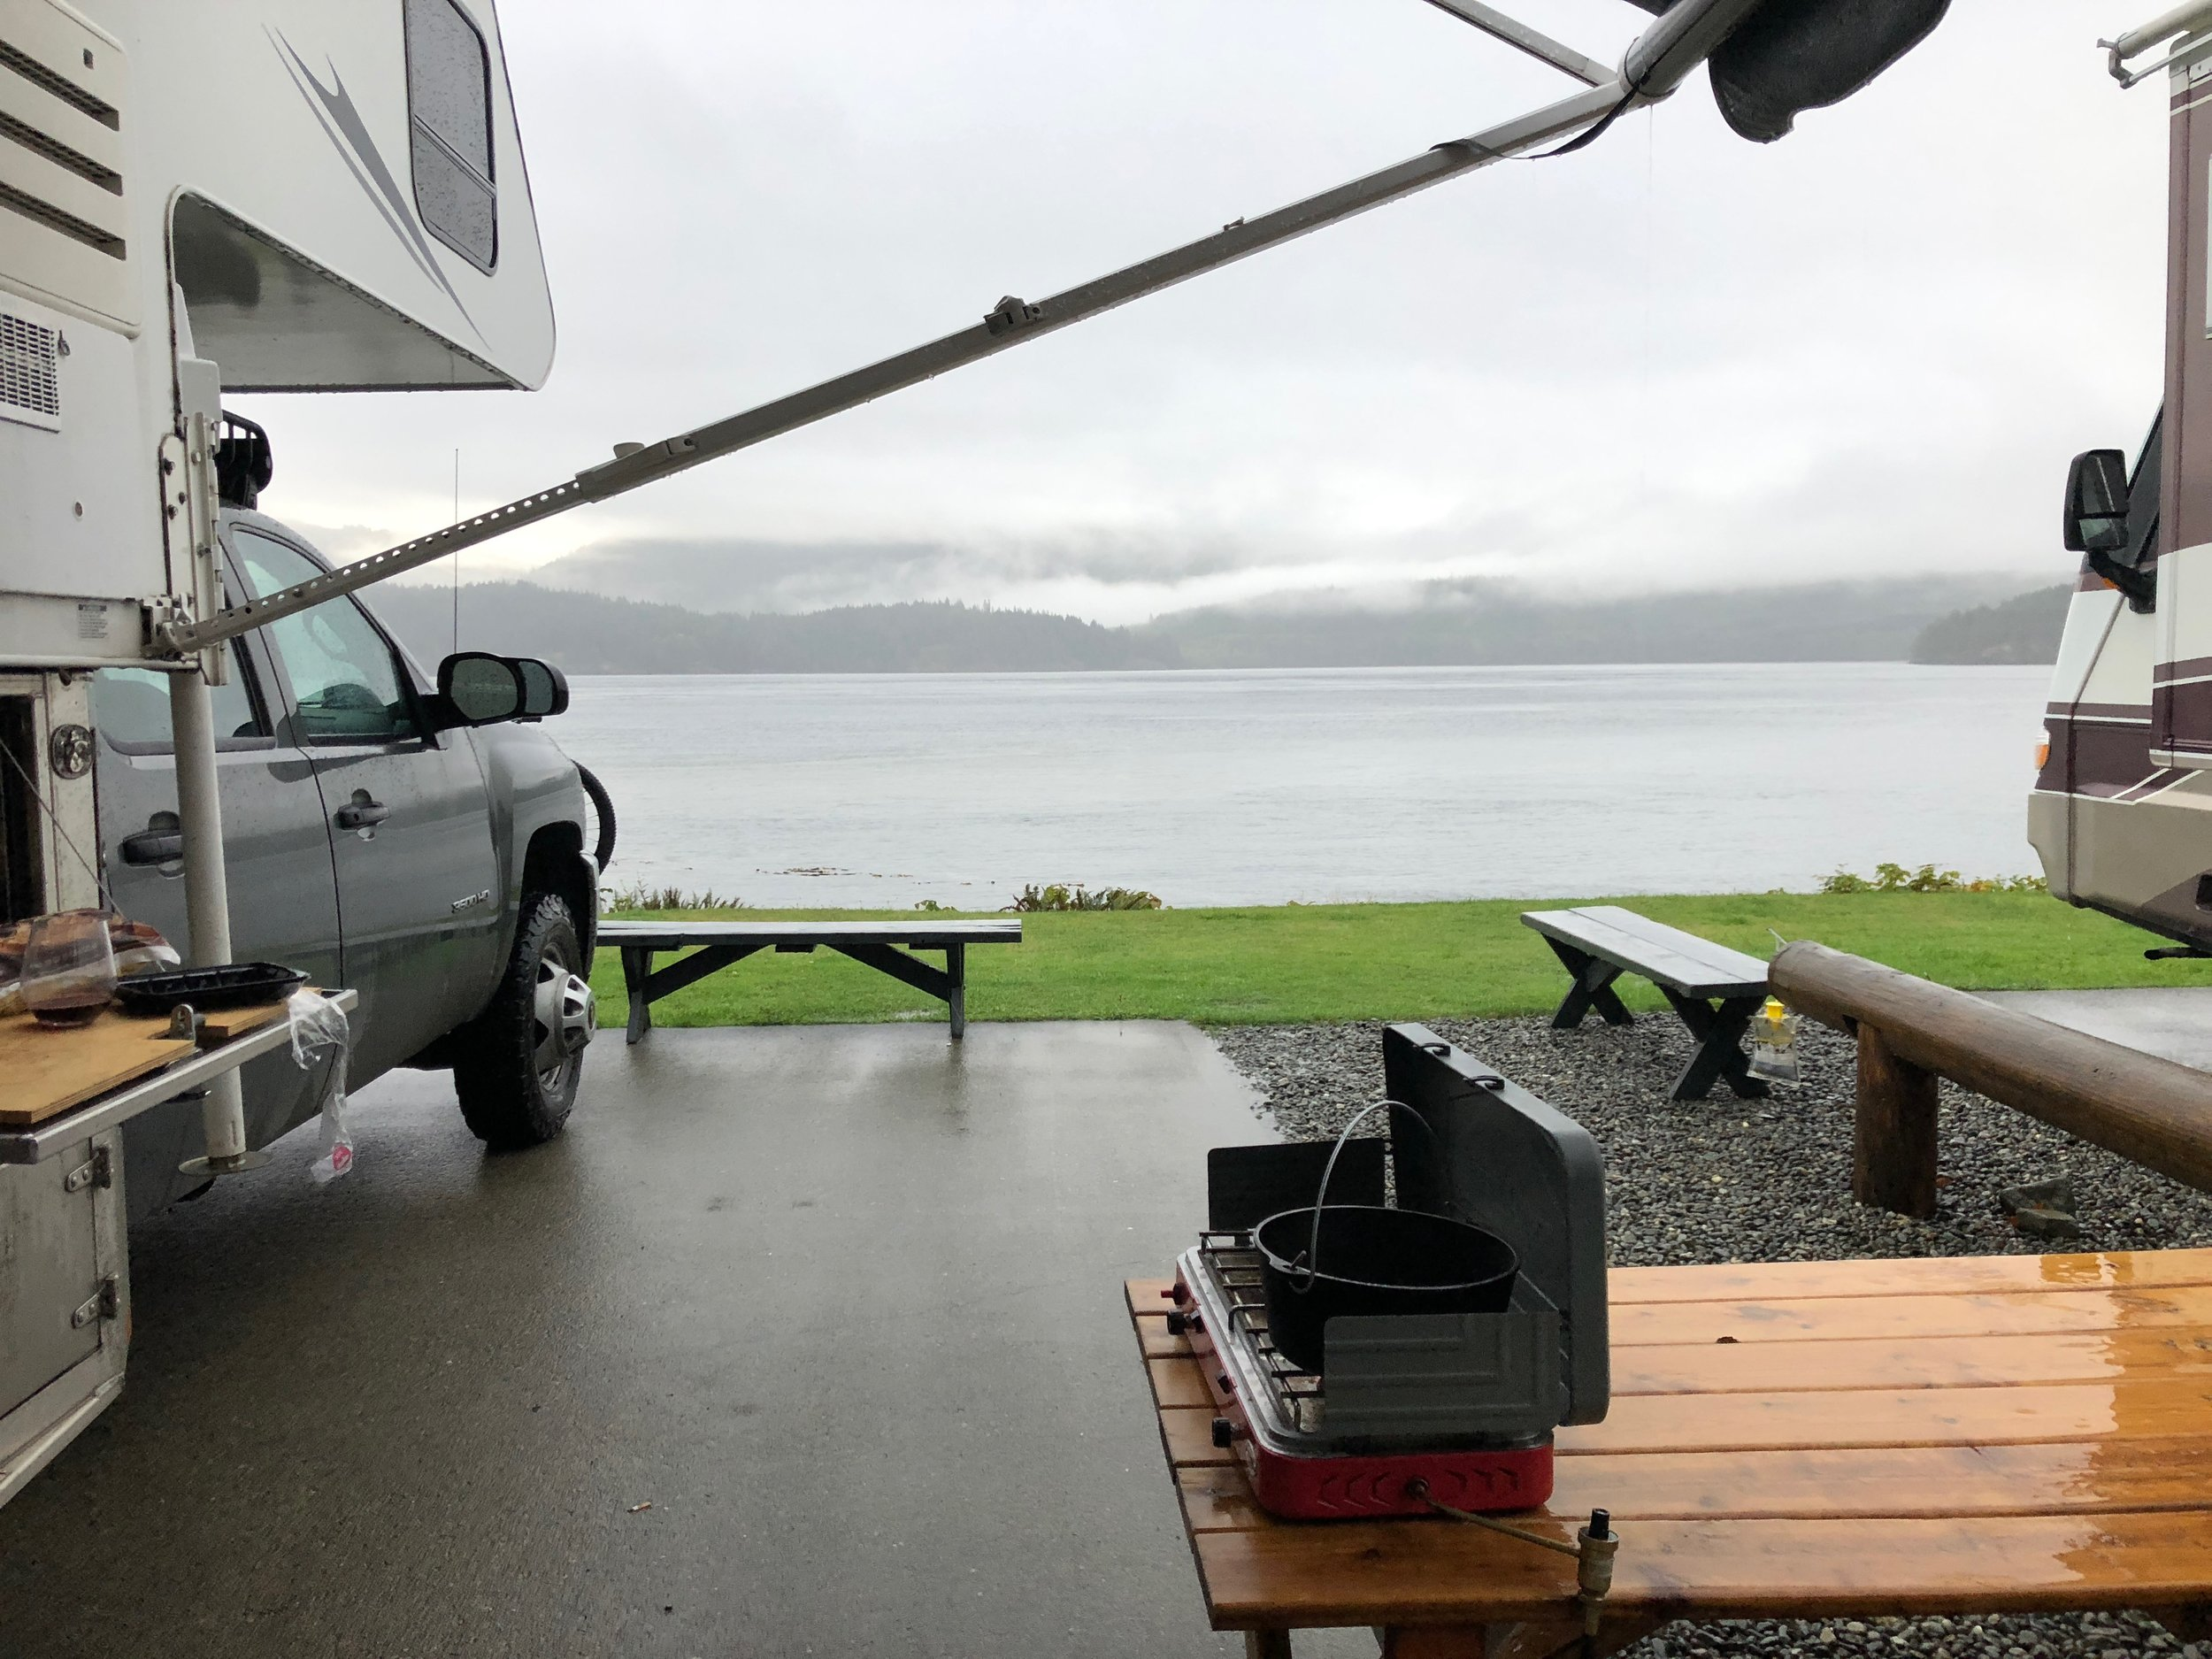 Finally! A campsite on the water!